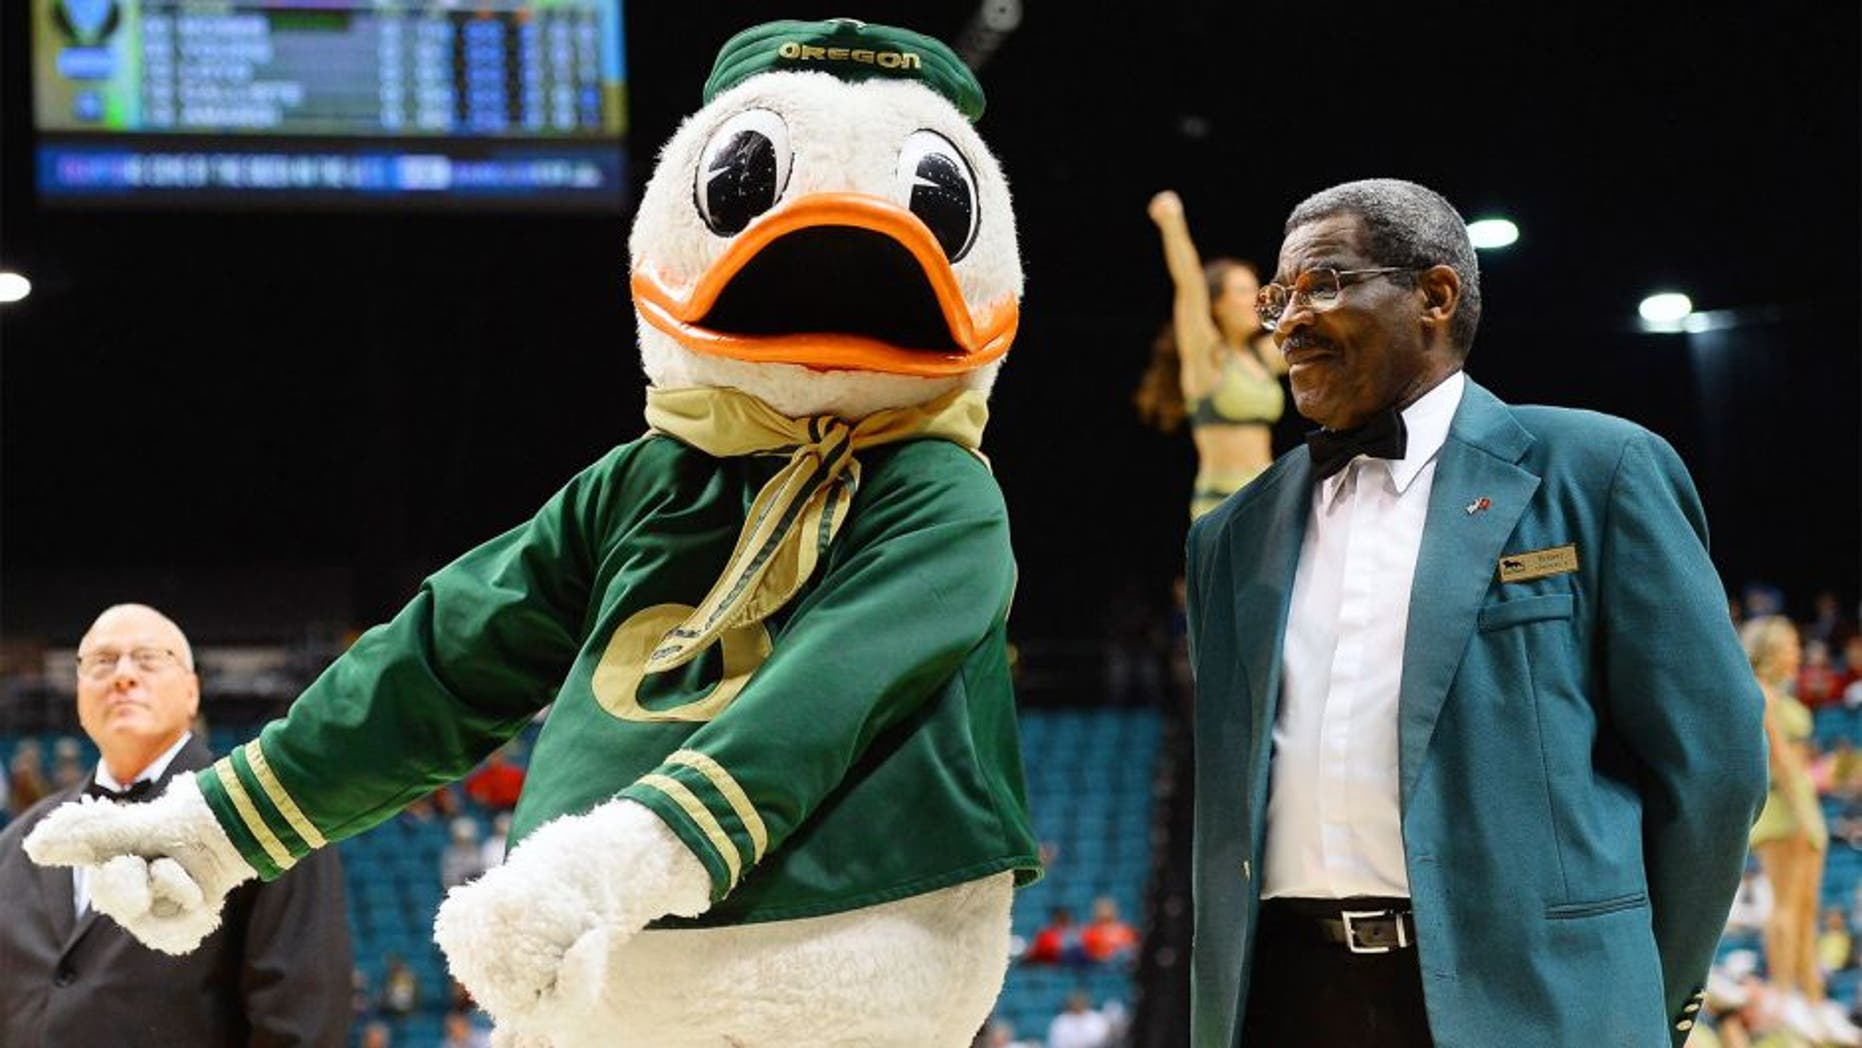 LAS VEGAS, NV - MARCH 12: Oregon Ducks mascot The Duck jokes around with World Boxing Hall of Fame and California Boxing Hall of Fame referee Robert Byrd, an MGM Grand usher, during a first-round game of the Pac-12 Basketball Tournament against the Oregon State Beavers at the MGM Grand Garden Arena on March 12, 2014 in Las Vegas, Nevada. Oregon won 88-74. (Photo by Ethan Miller/Getty Images)